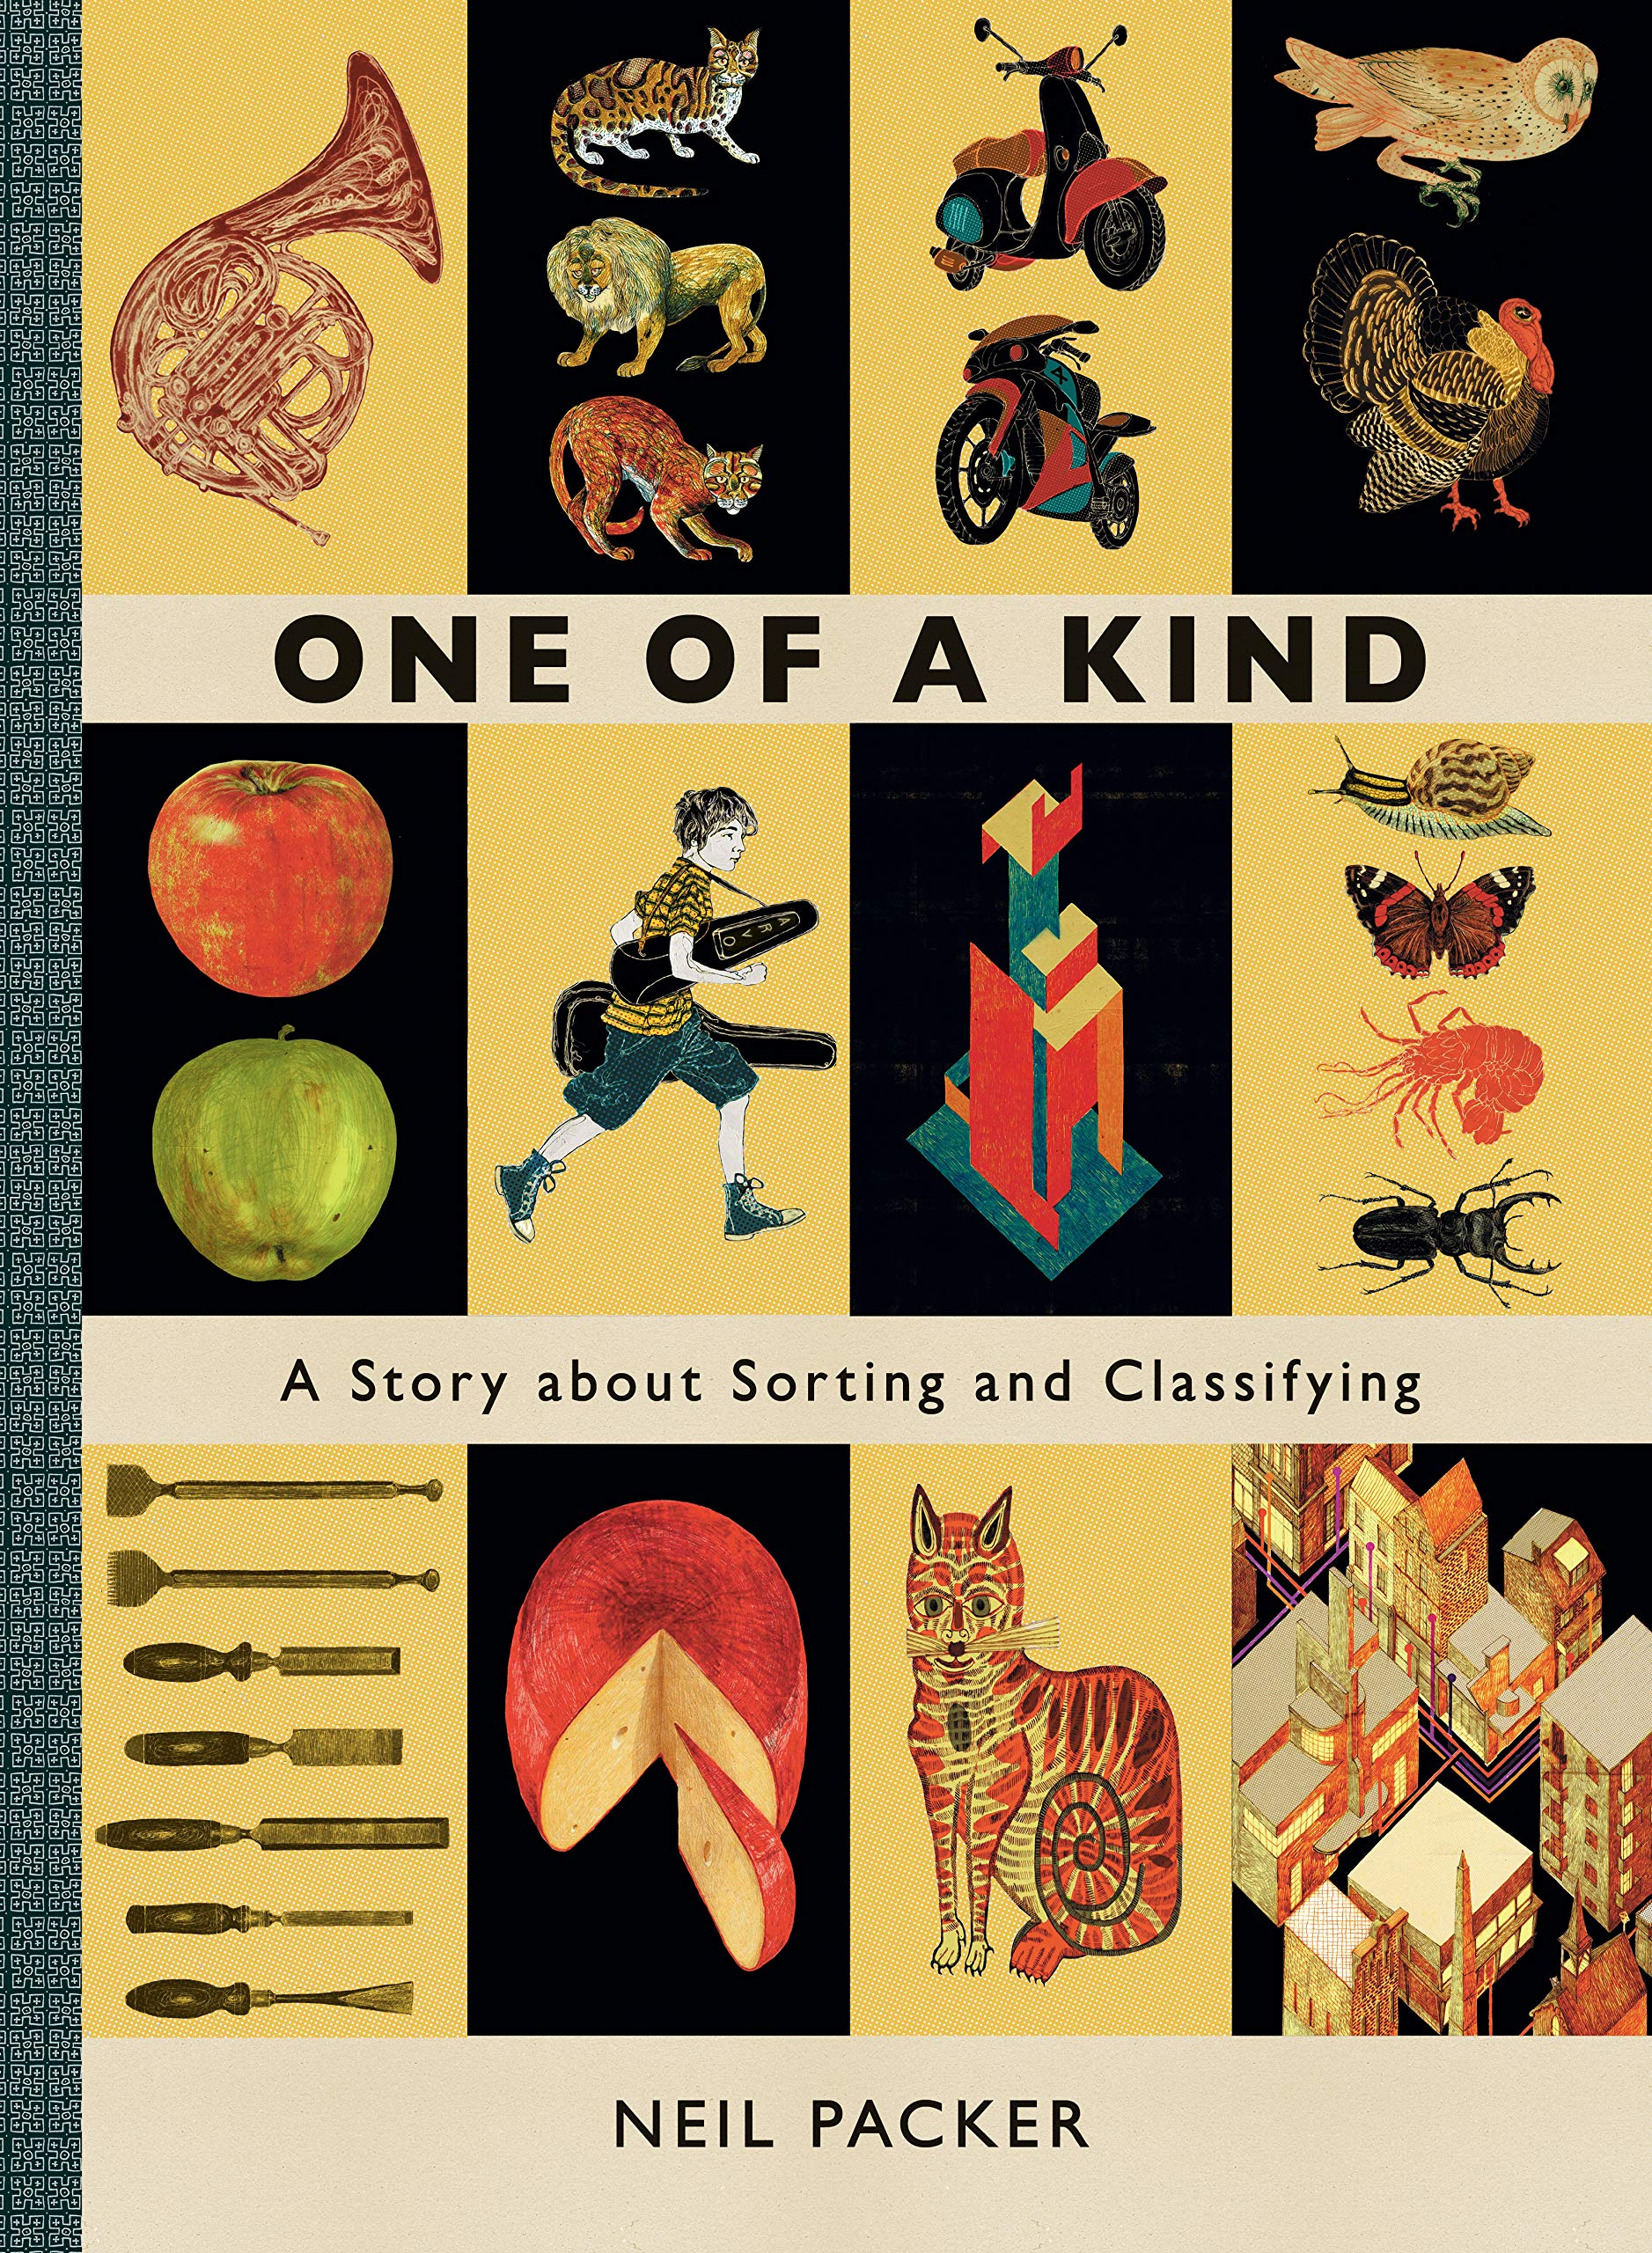 One of a Kind: A Story About Sorting and Classifying: Packer, Neil, Packer,  Neil: 9781536211214: Amazon.com: Books